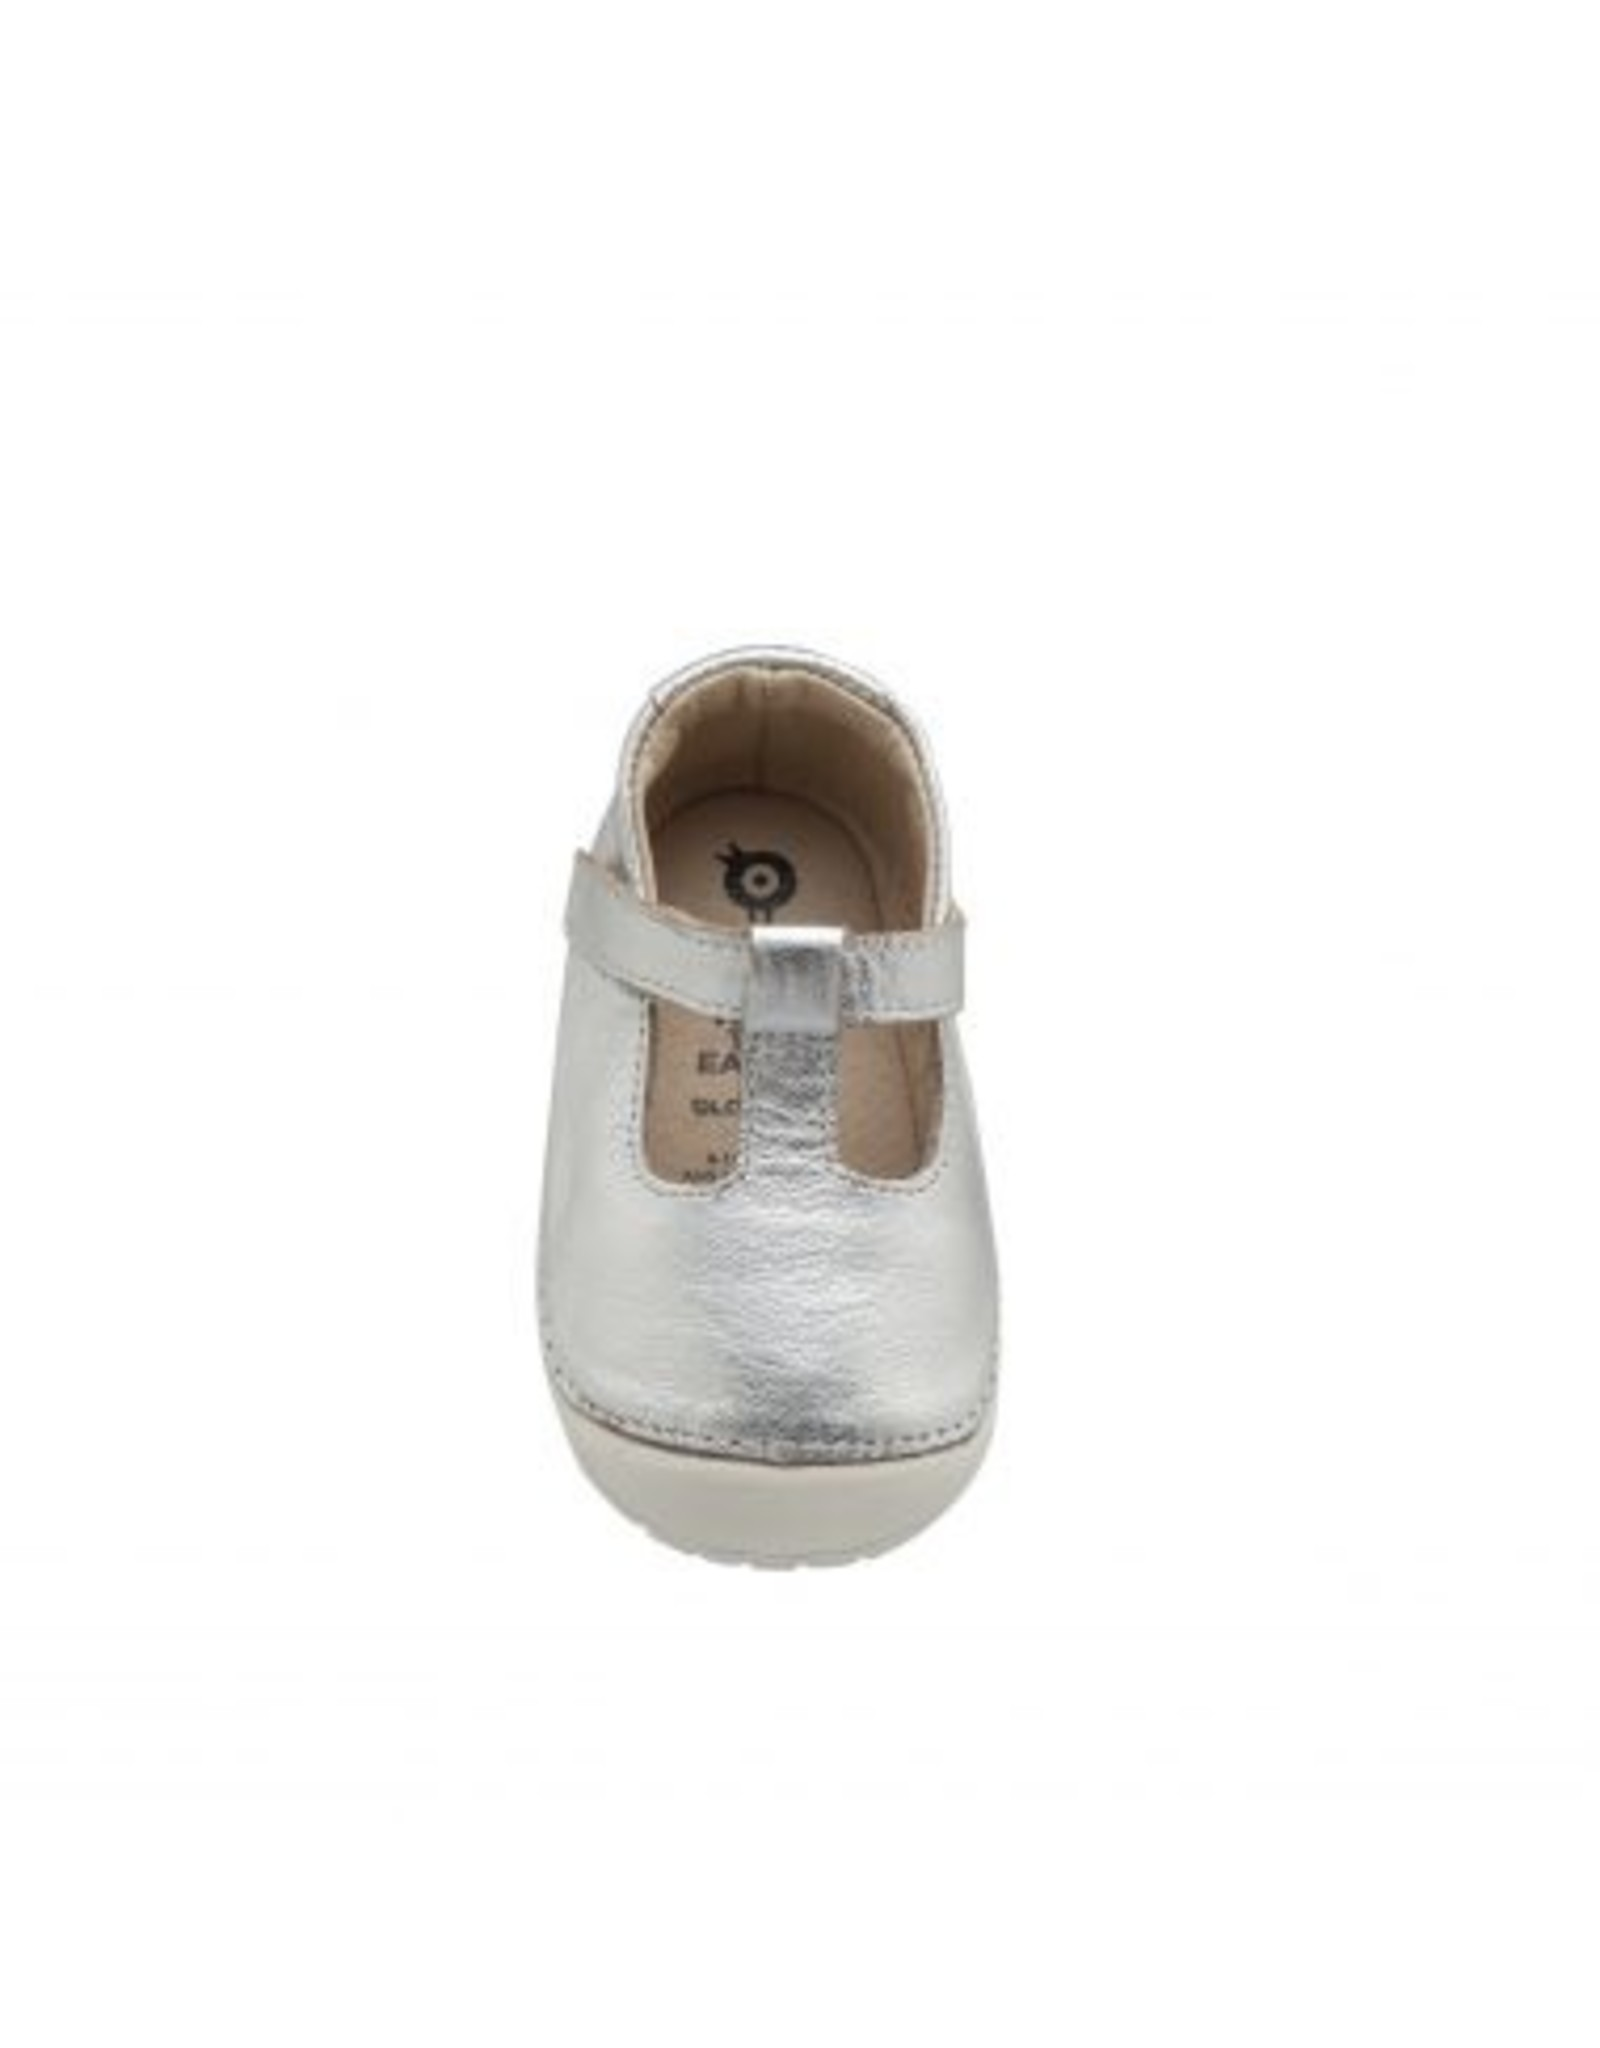 Oldsoles OLDSOLES T-2 Silver